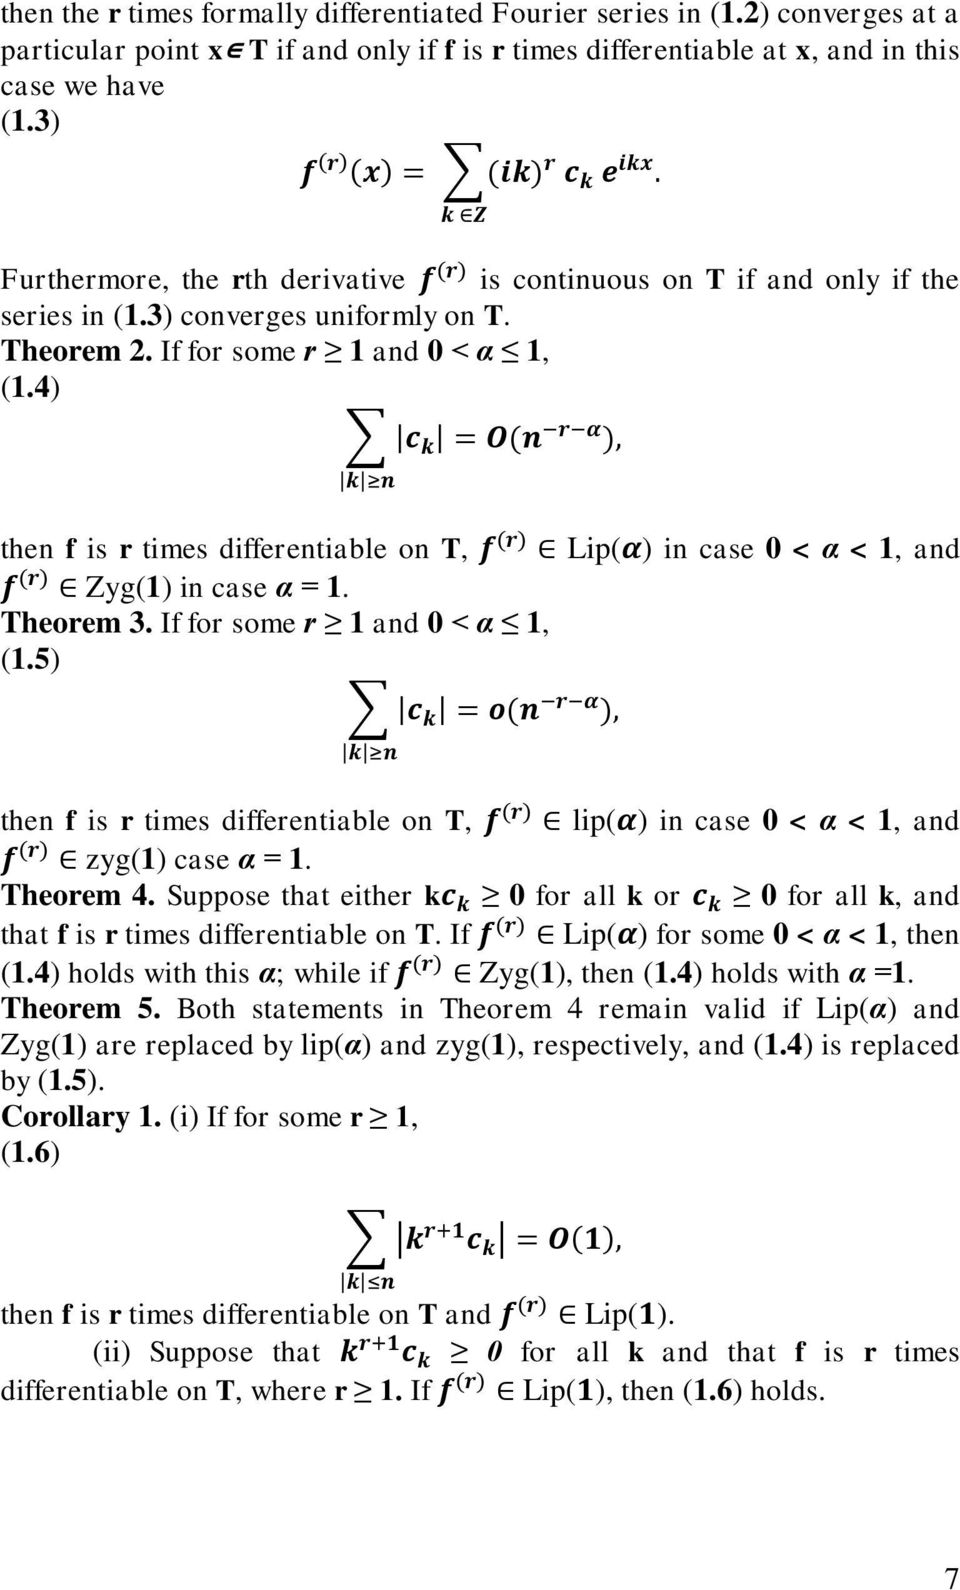 4) then f is r times differentiable on T, Zyg(1) in case α = 1. Theorem 3. If for some r 1 and 0 < α 1, (1.